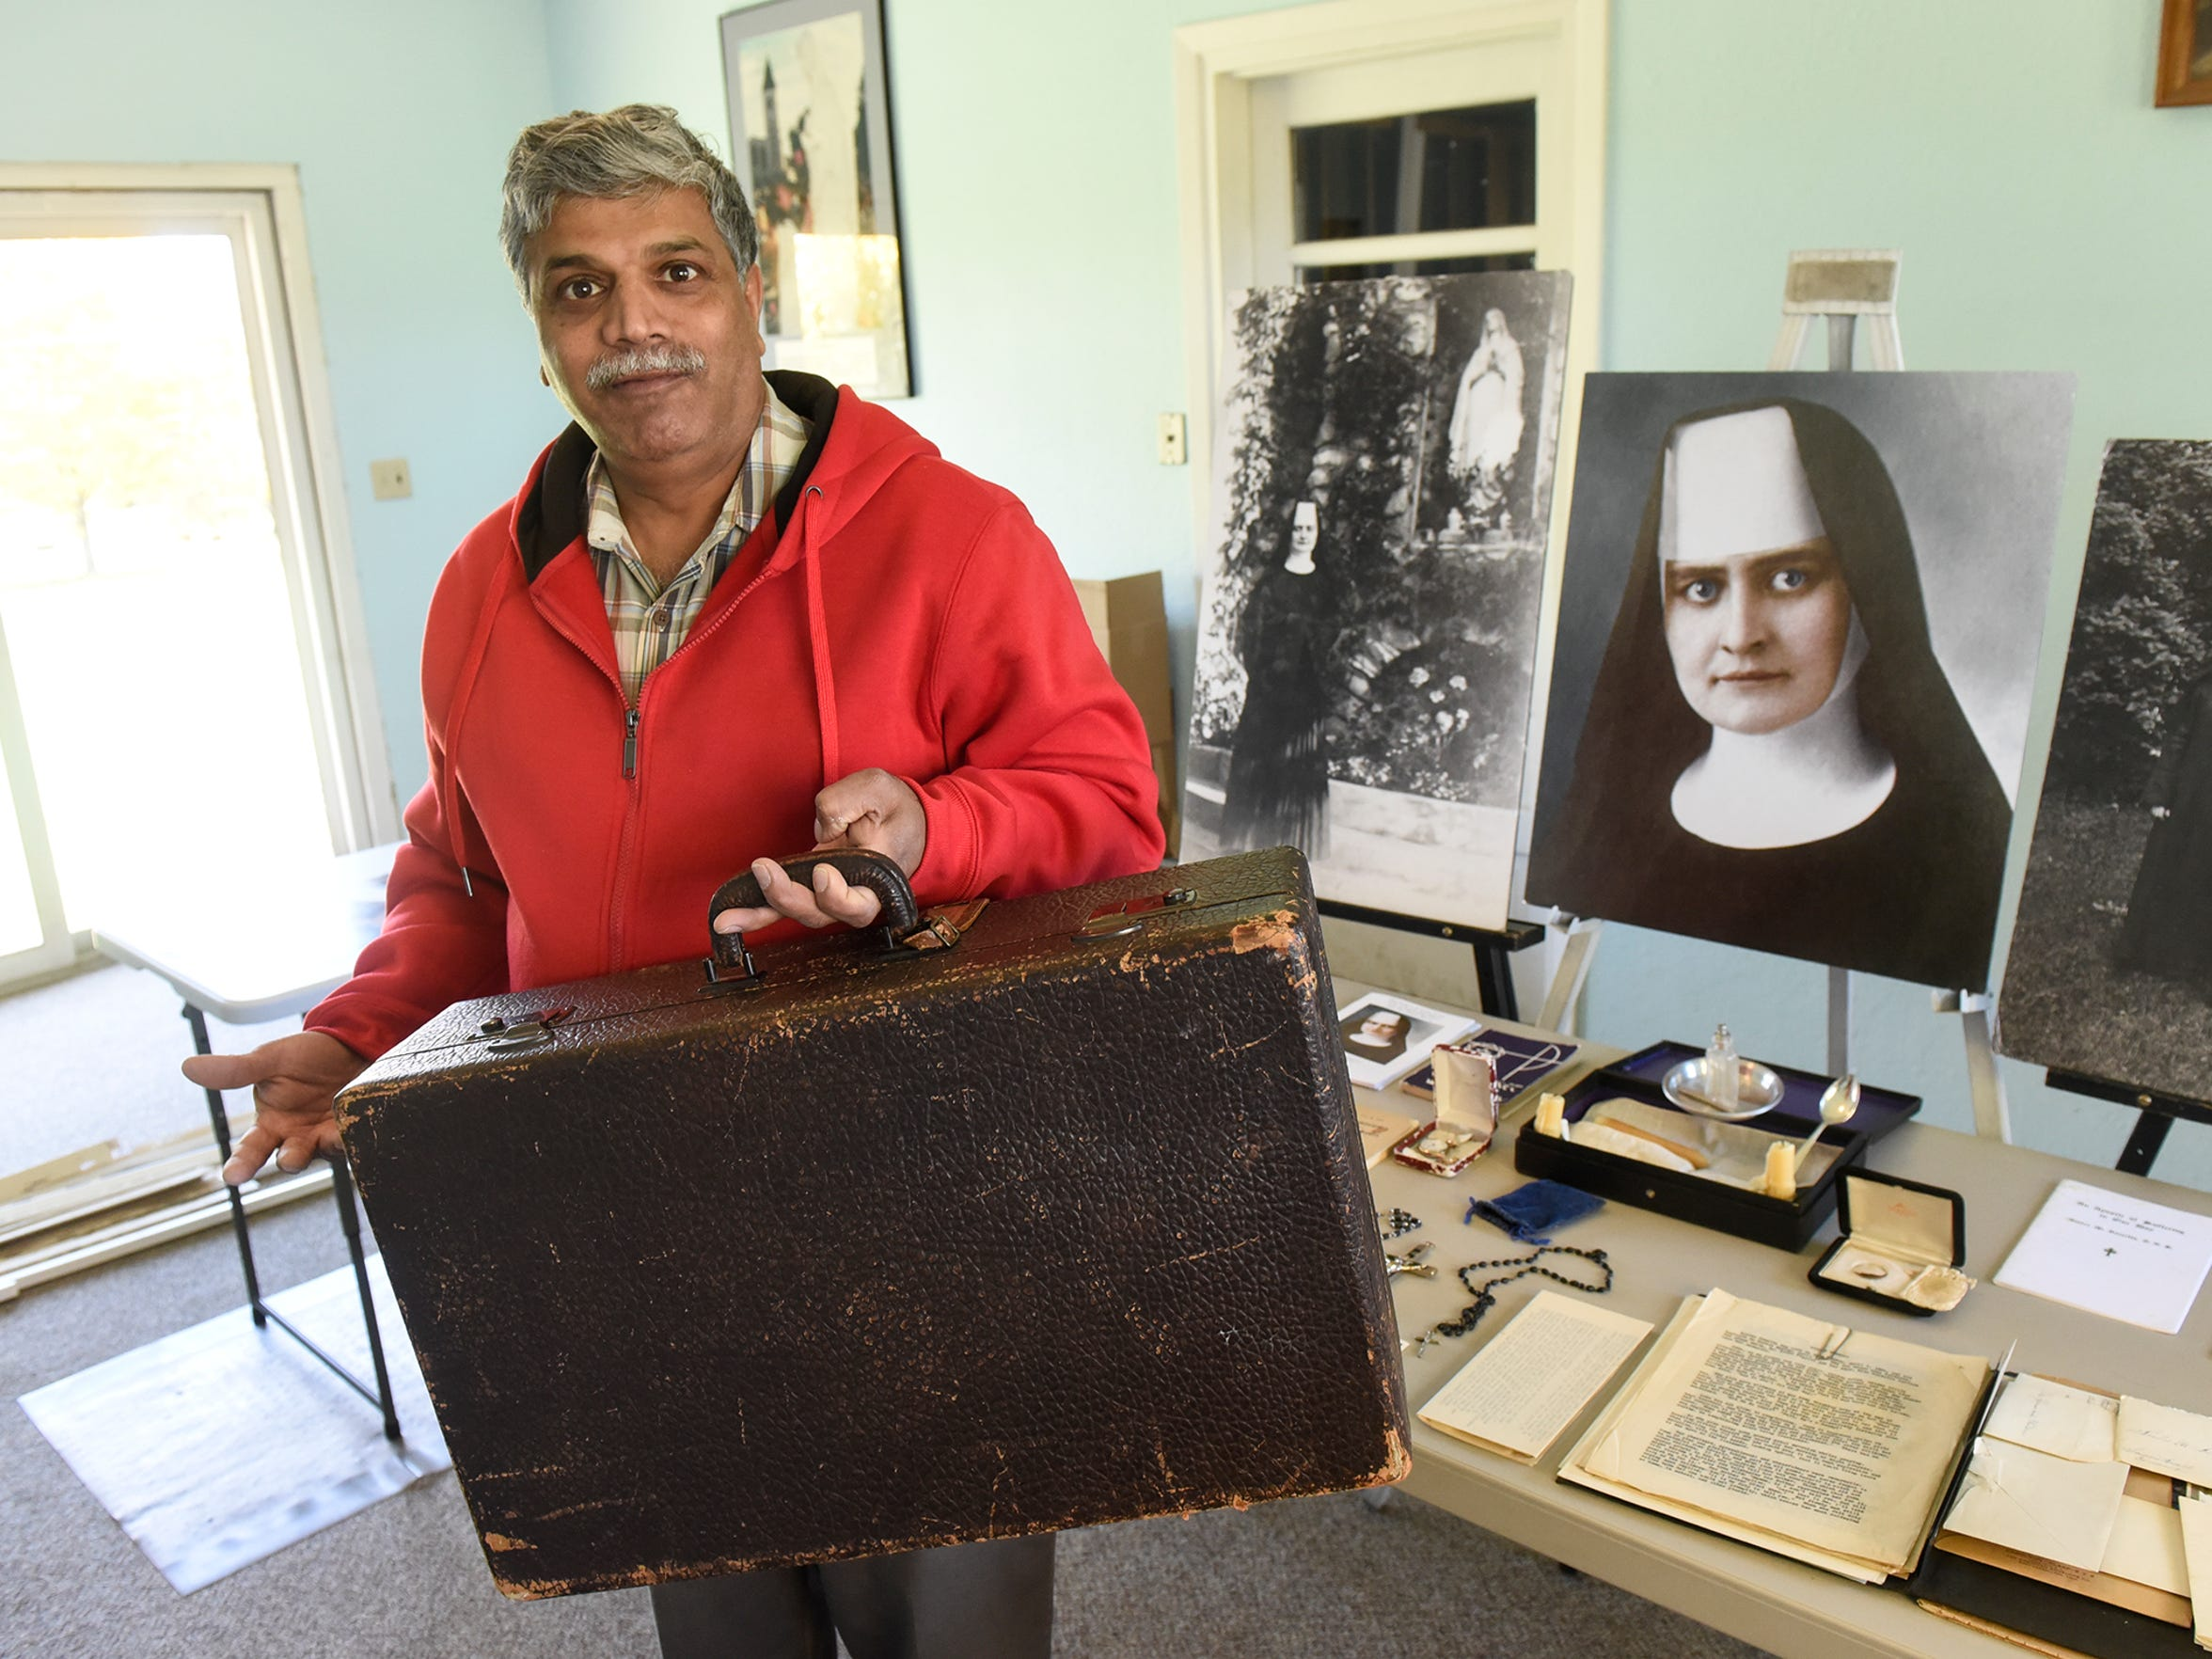 Patrick Norton holds a suitcase owned by Sister M. Annella Zervas Tuesday, Oct. 24, in St. Joseph.